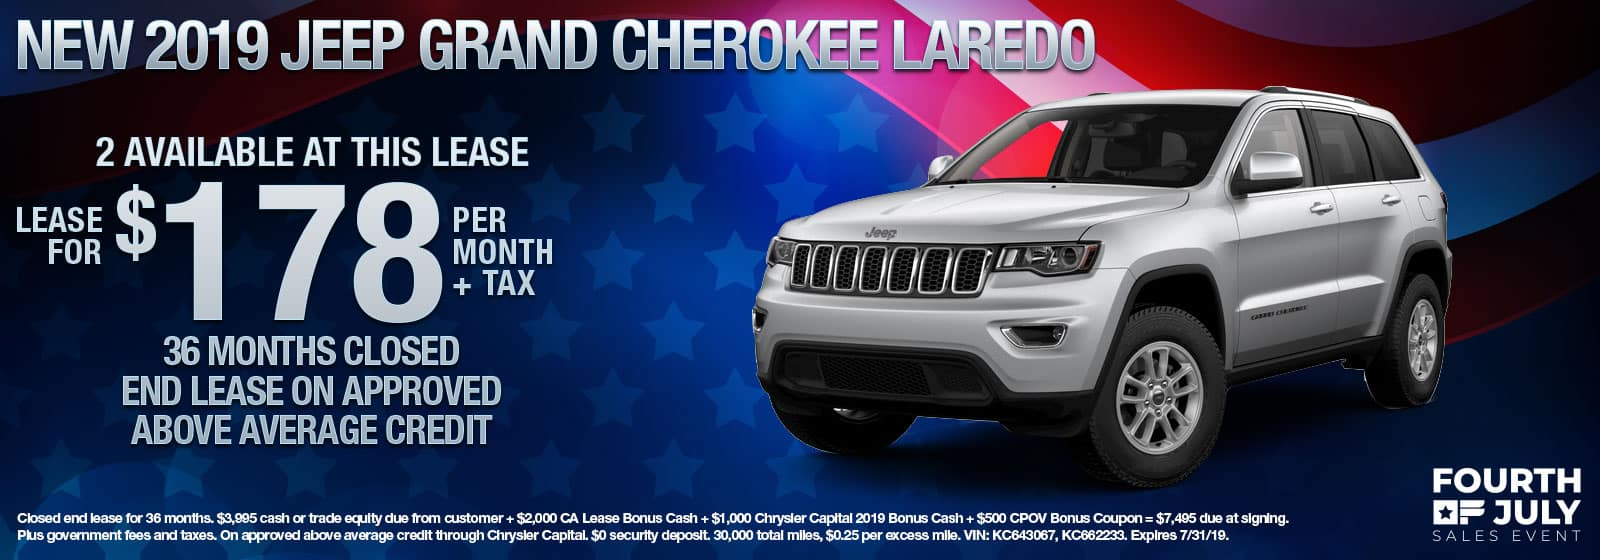 Jeep Dealership San Diego >> Jeep Dealership San Diego Top New Car Release Date